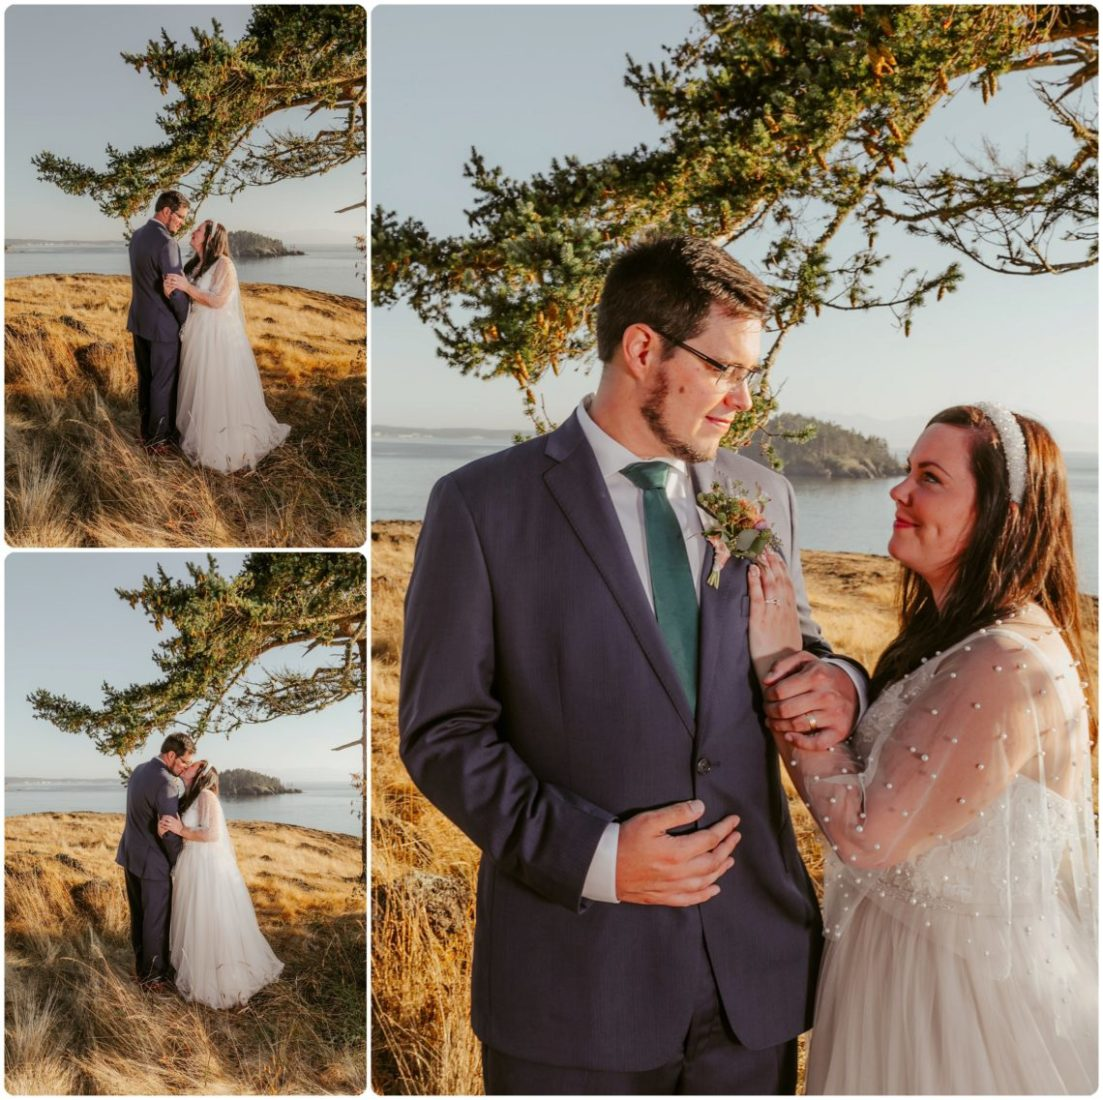 Stephanie Walls Photography 1180 scaled Summer Deception Pass Elopement at Rosario Beach | Jacinda & Trevor